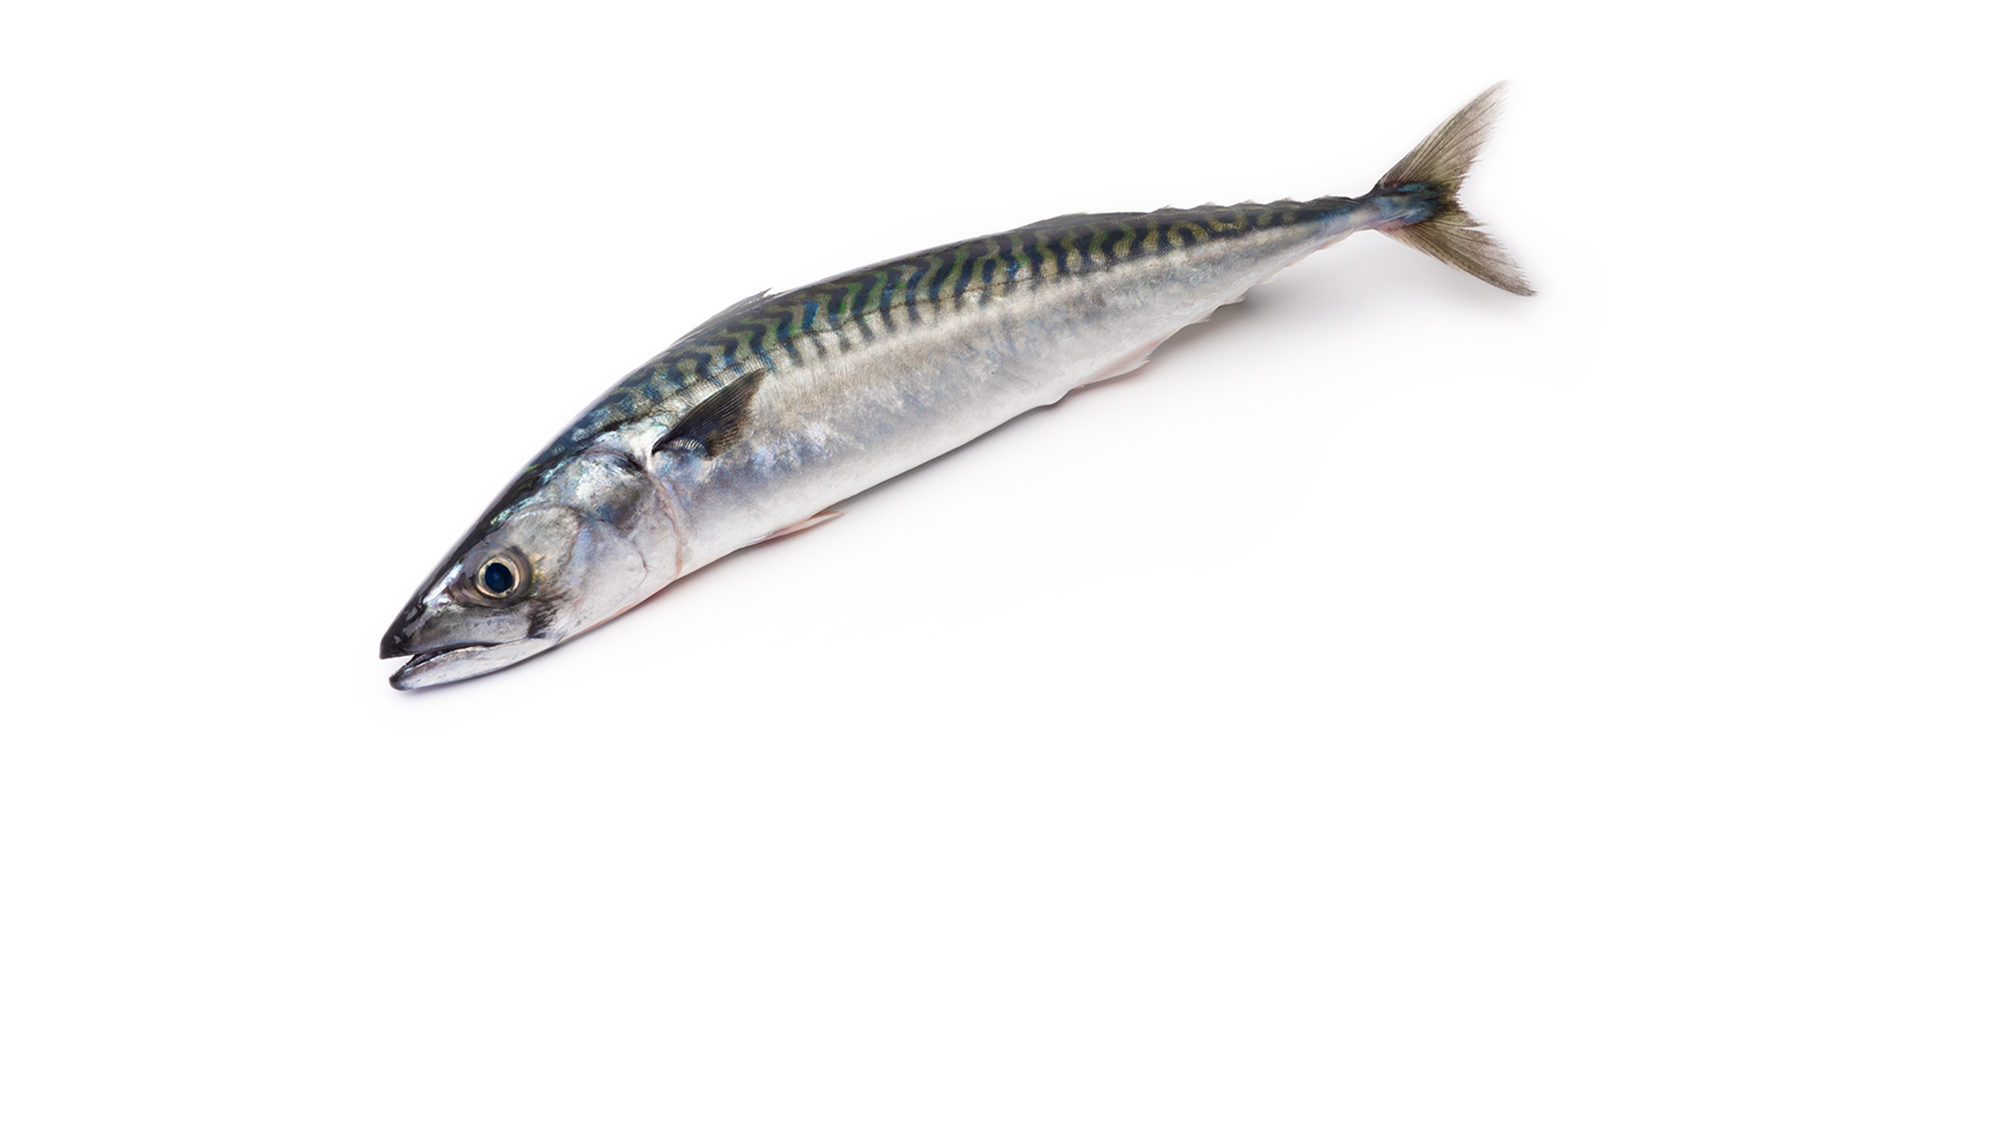 atlantic-mackerel-scomber-scombrus